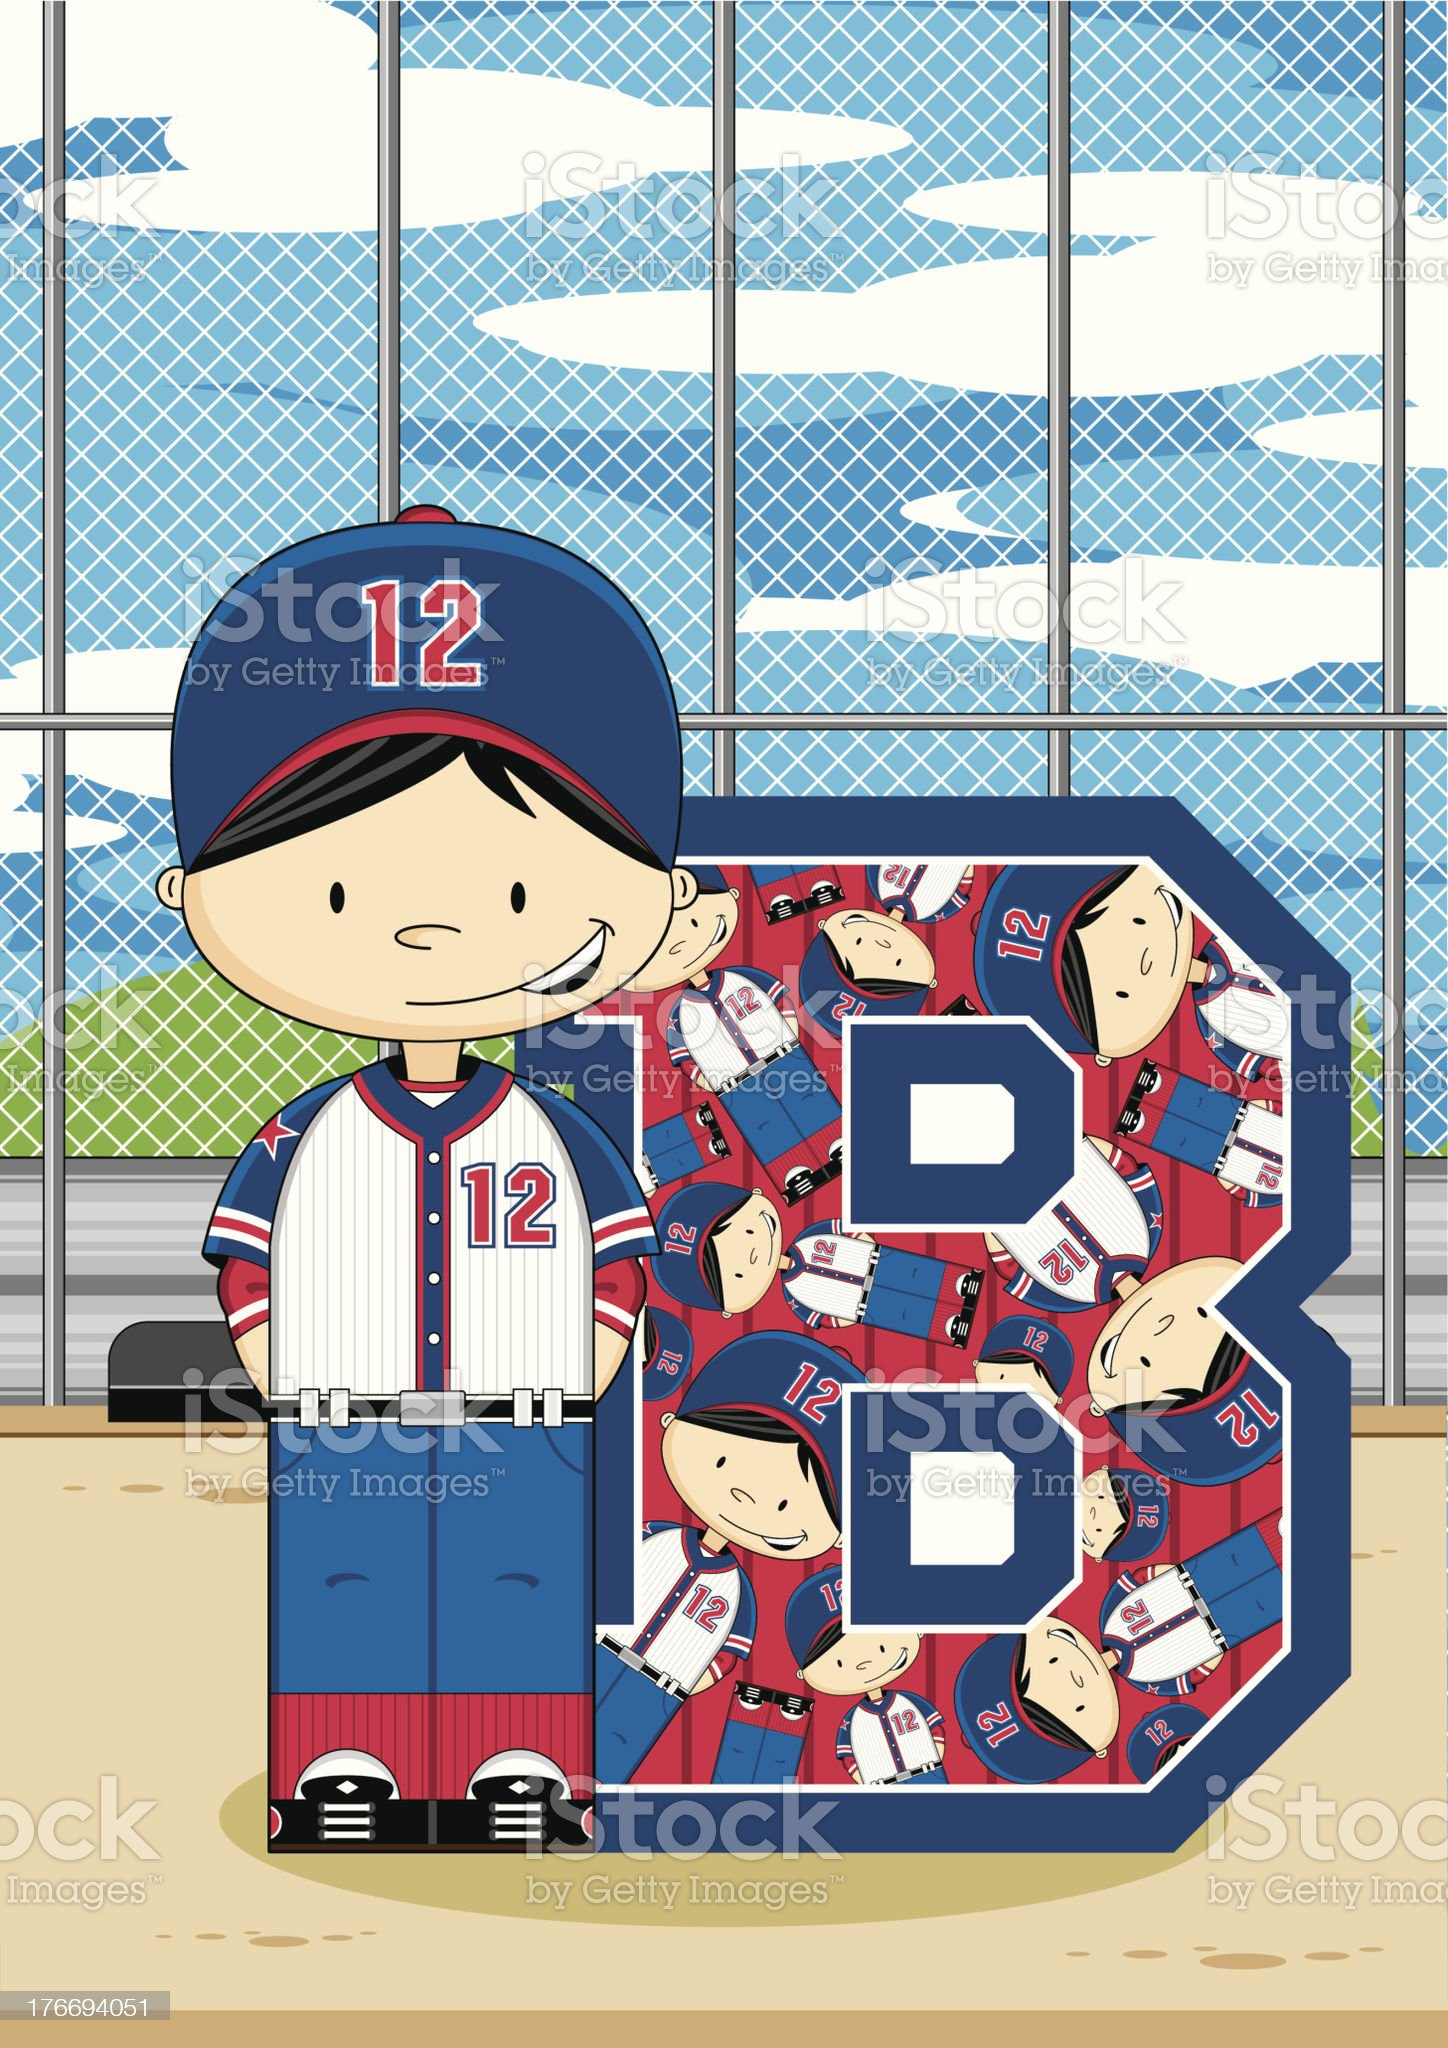 Cute Baseball Boy Learning Letter B royalty-free stock vector art